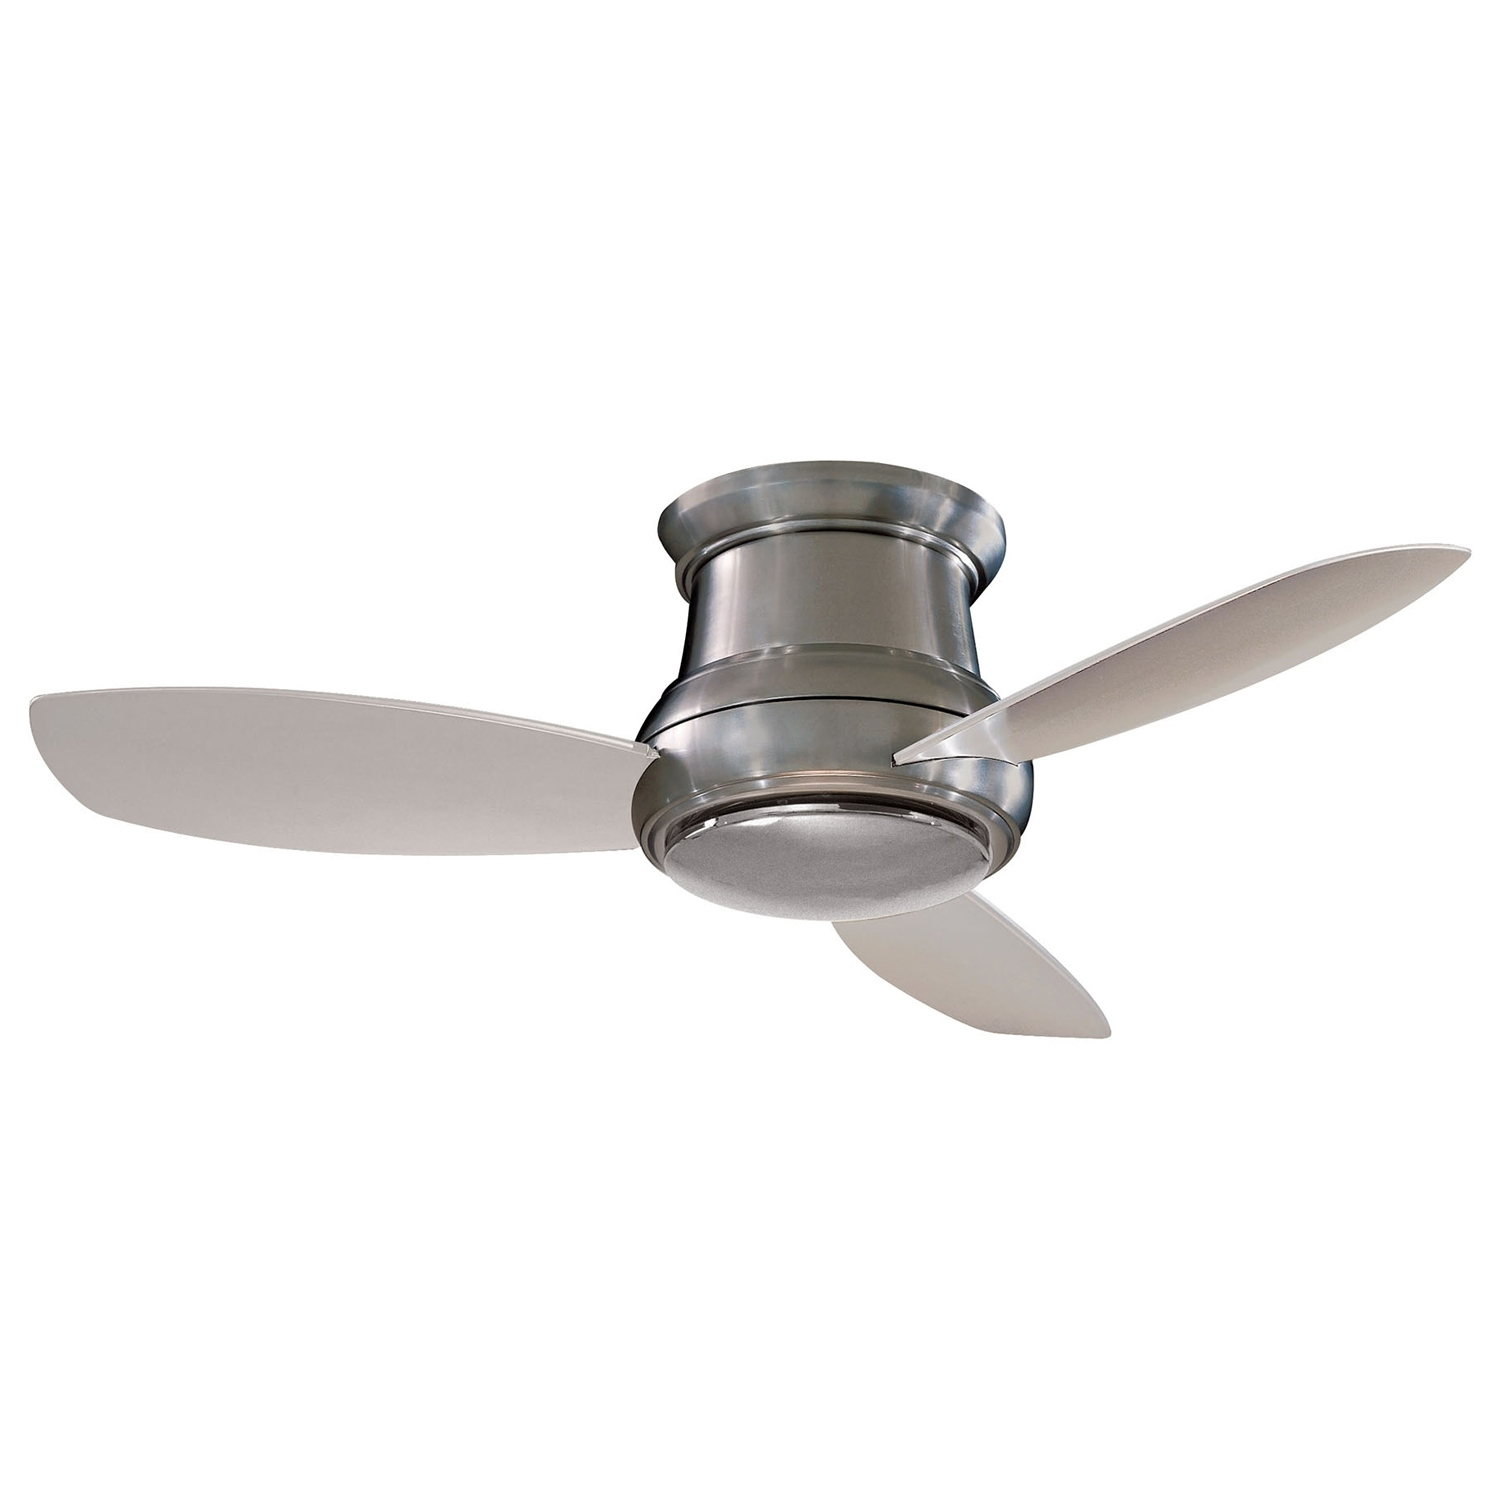 Favorite 36 Inch Outdoor Ceiling Fans Intended For Ceiling Fan: Remarkable 36 Outdoor Ceiling Fan For Home 36 Inch Fans (View 3 of 20)